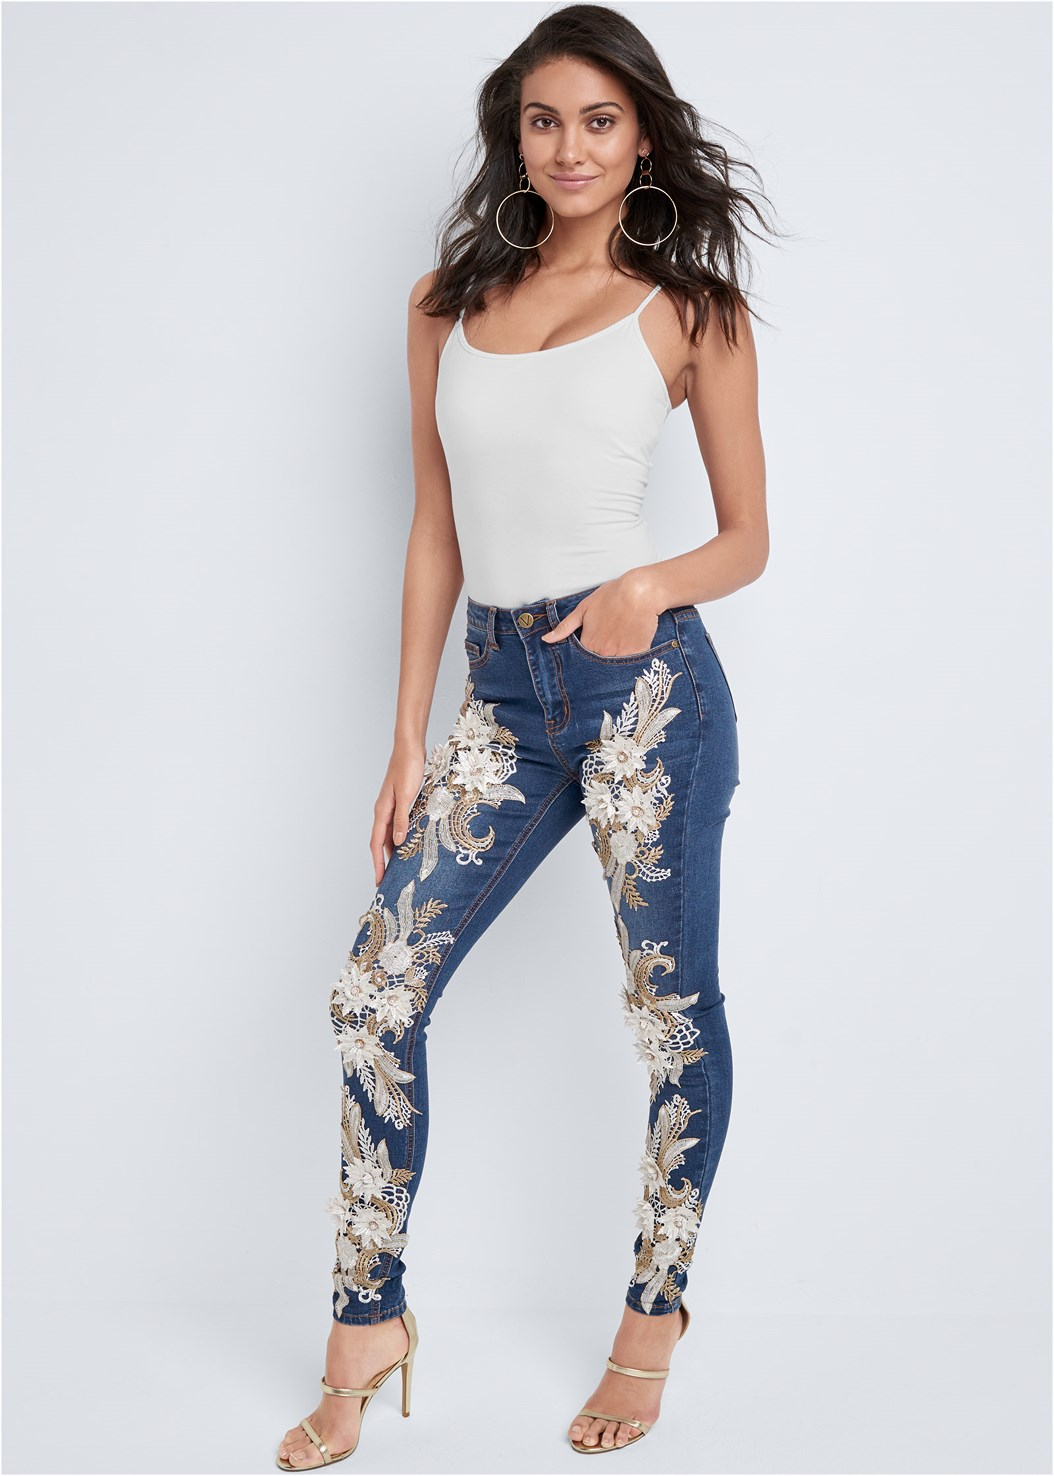 Floral Applique Skinny Jean,Basic Cami Two Pack,High Heel Strappy Sandals